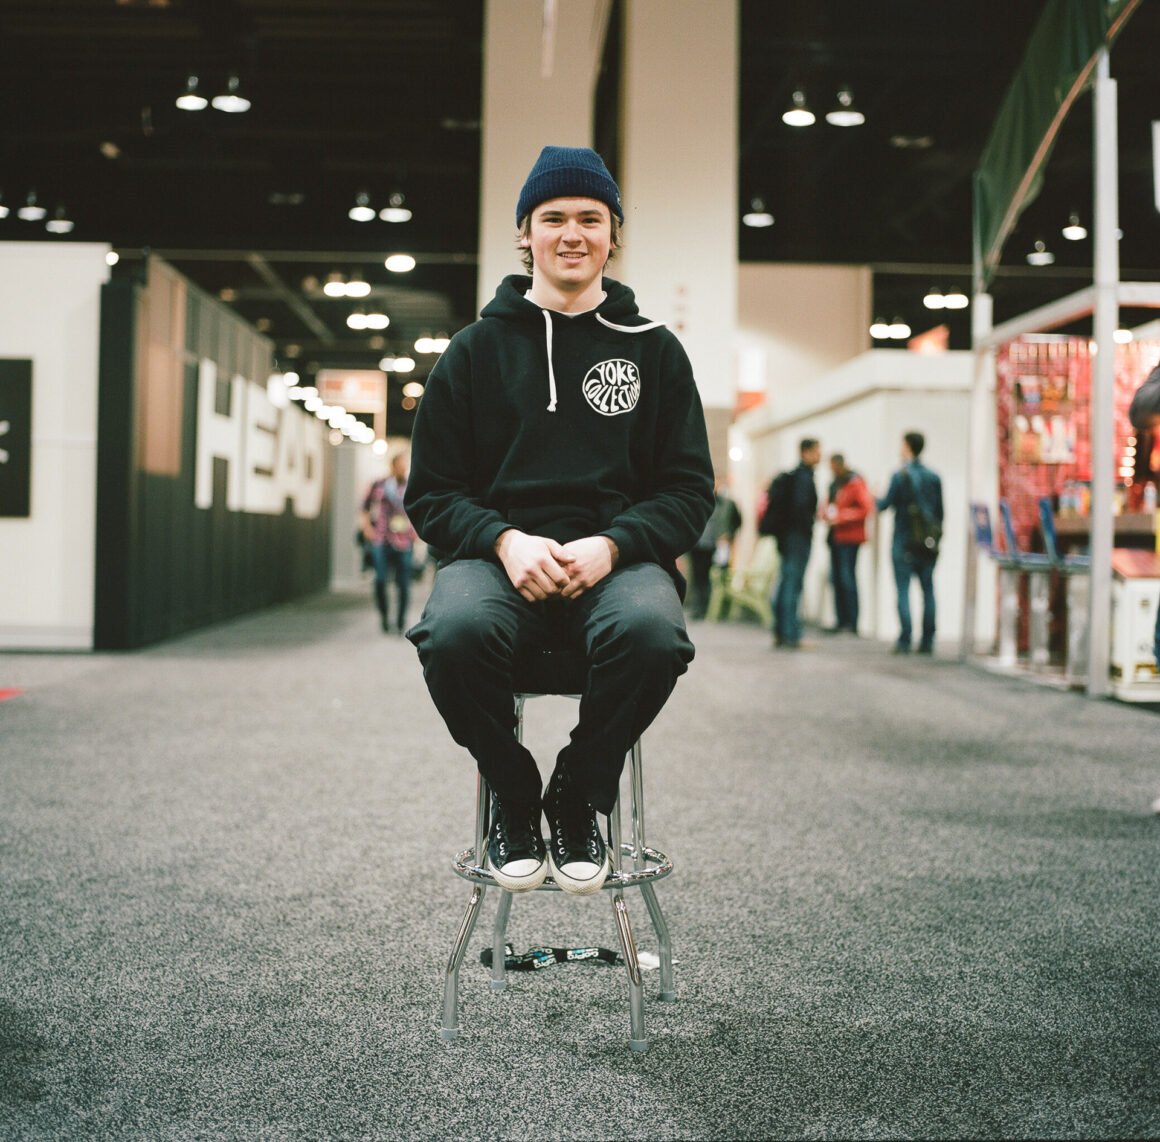 Line Skis athlete Charlie Dayton at the Colorado Snow Show